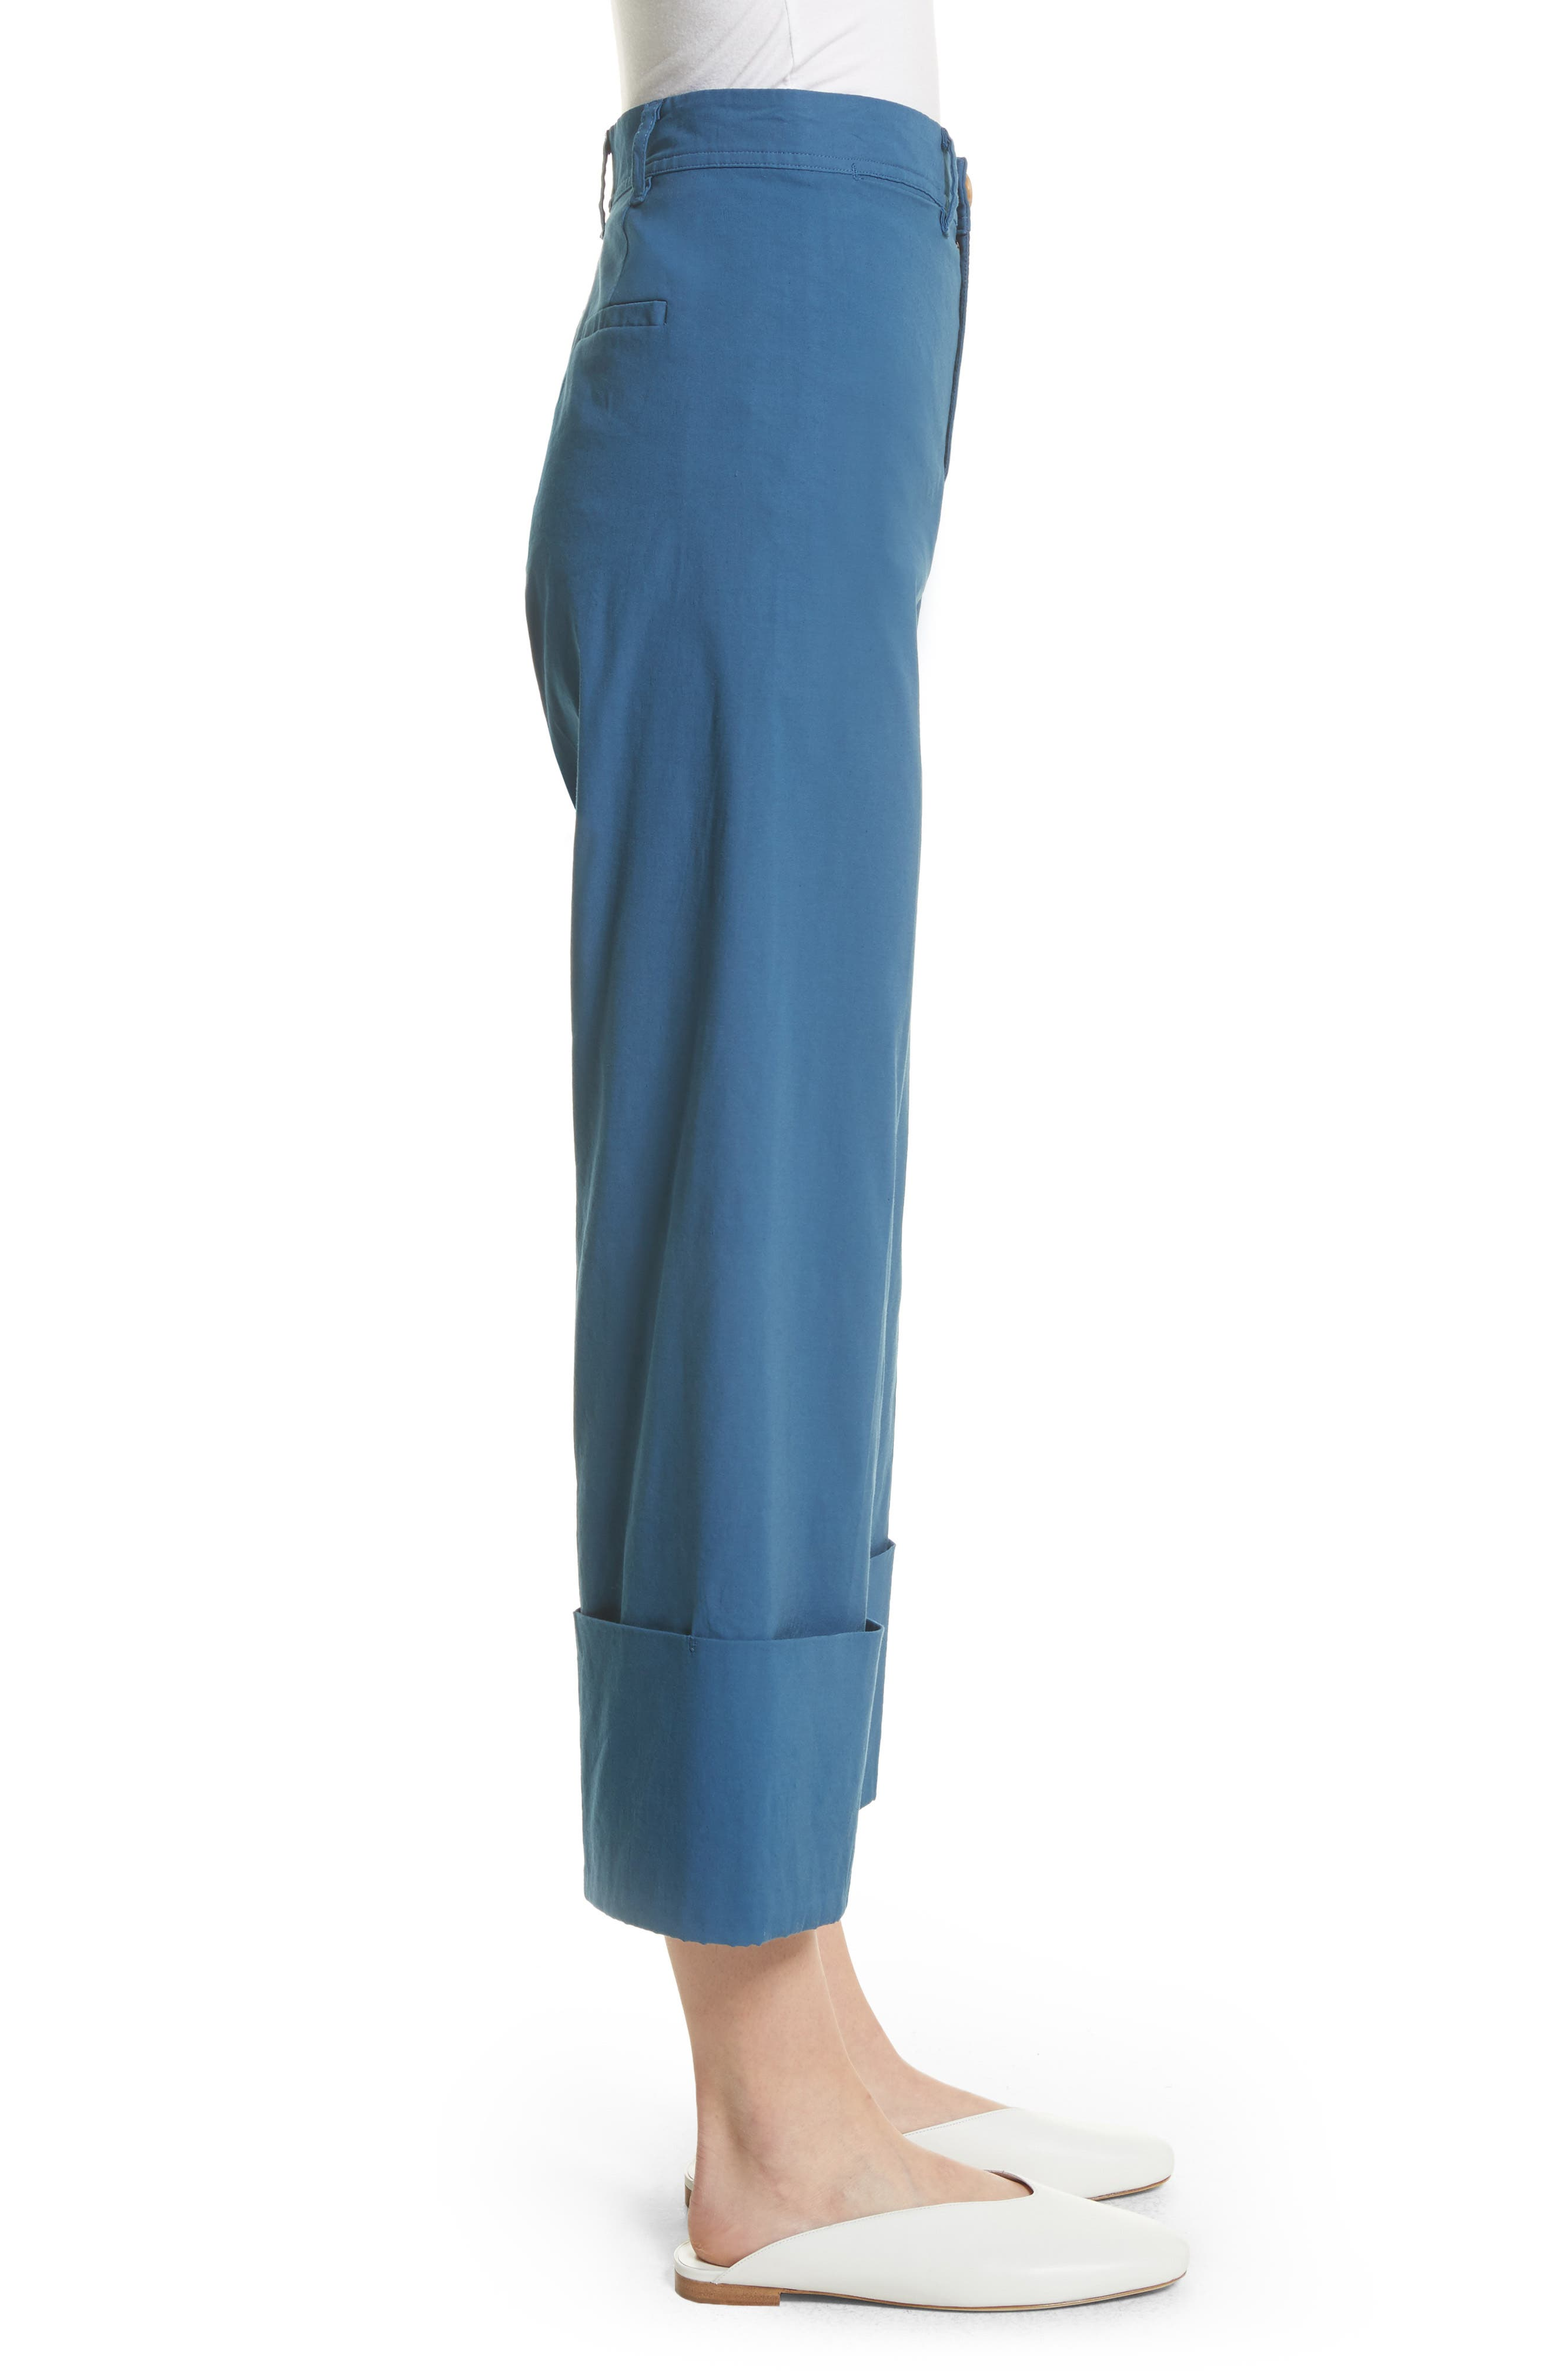 Winona Cuff Wide Leg Pants,                             Alternate thumbnail 3, color,                             400